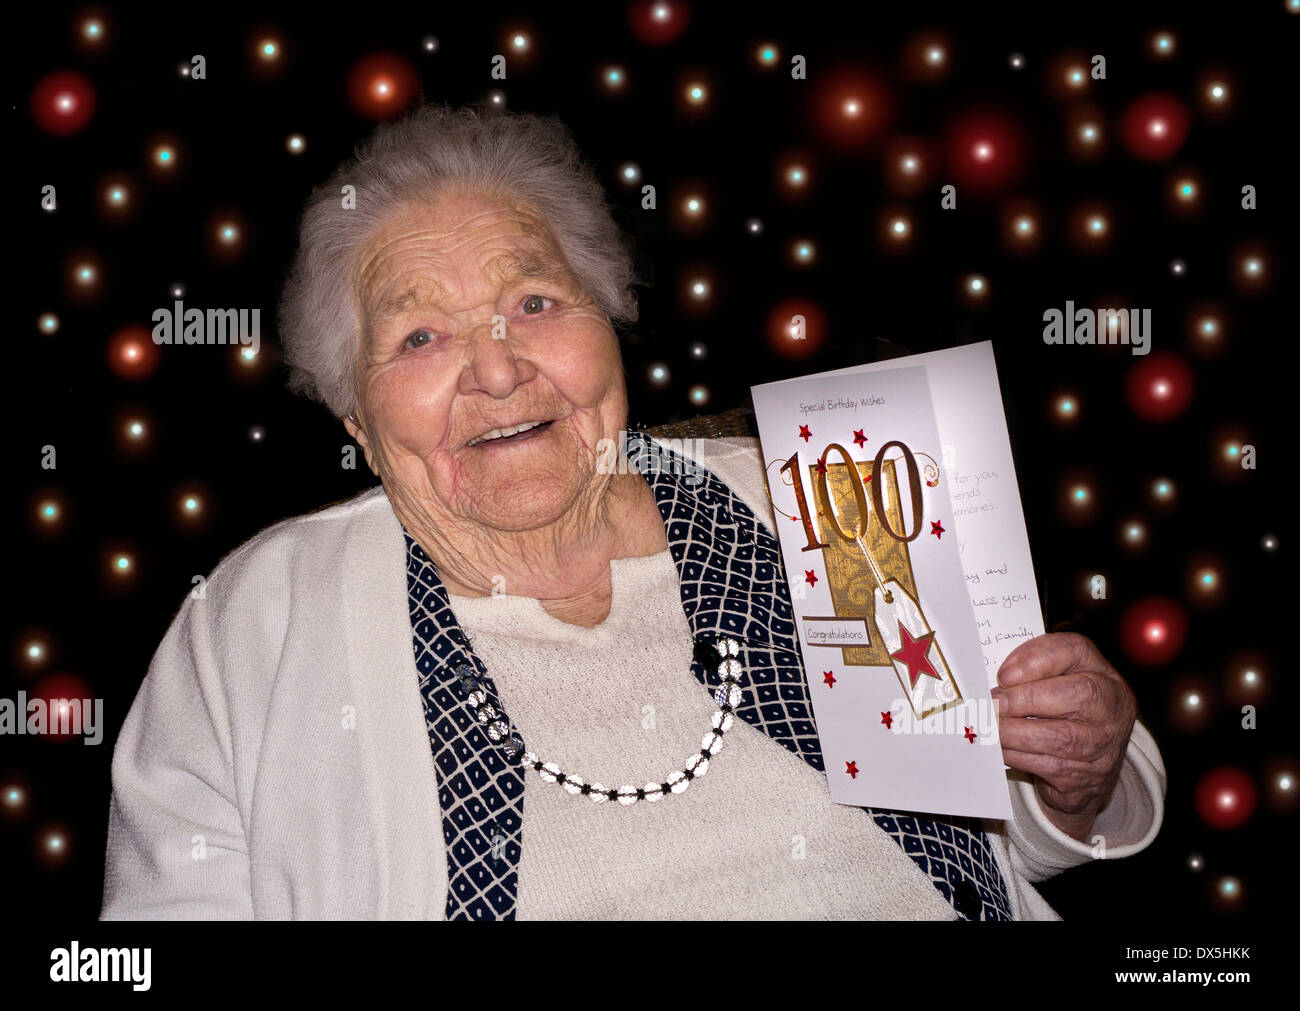 Happy Alert Elderly Lady At 100 Years Of Age Holding A Congratulatory Birthday Card With Party Lights Behind